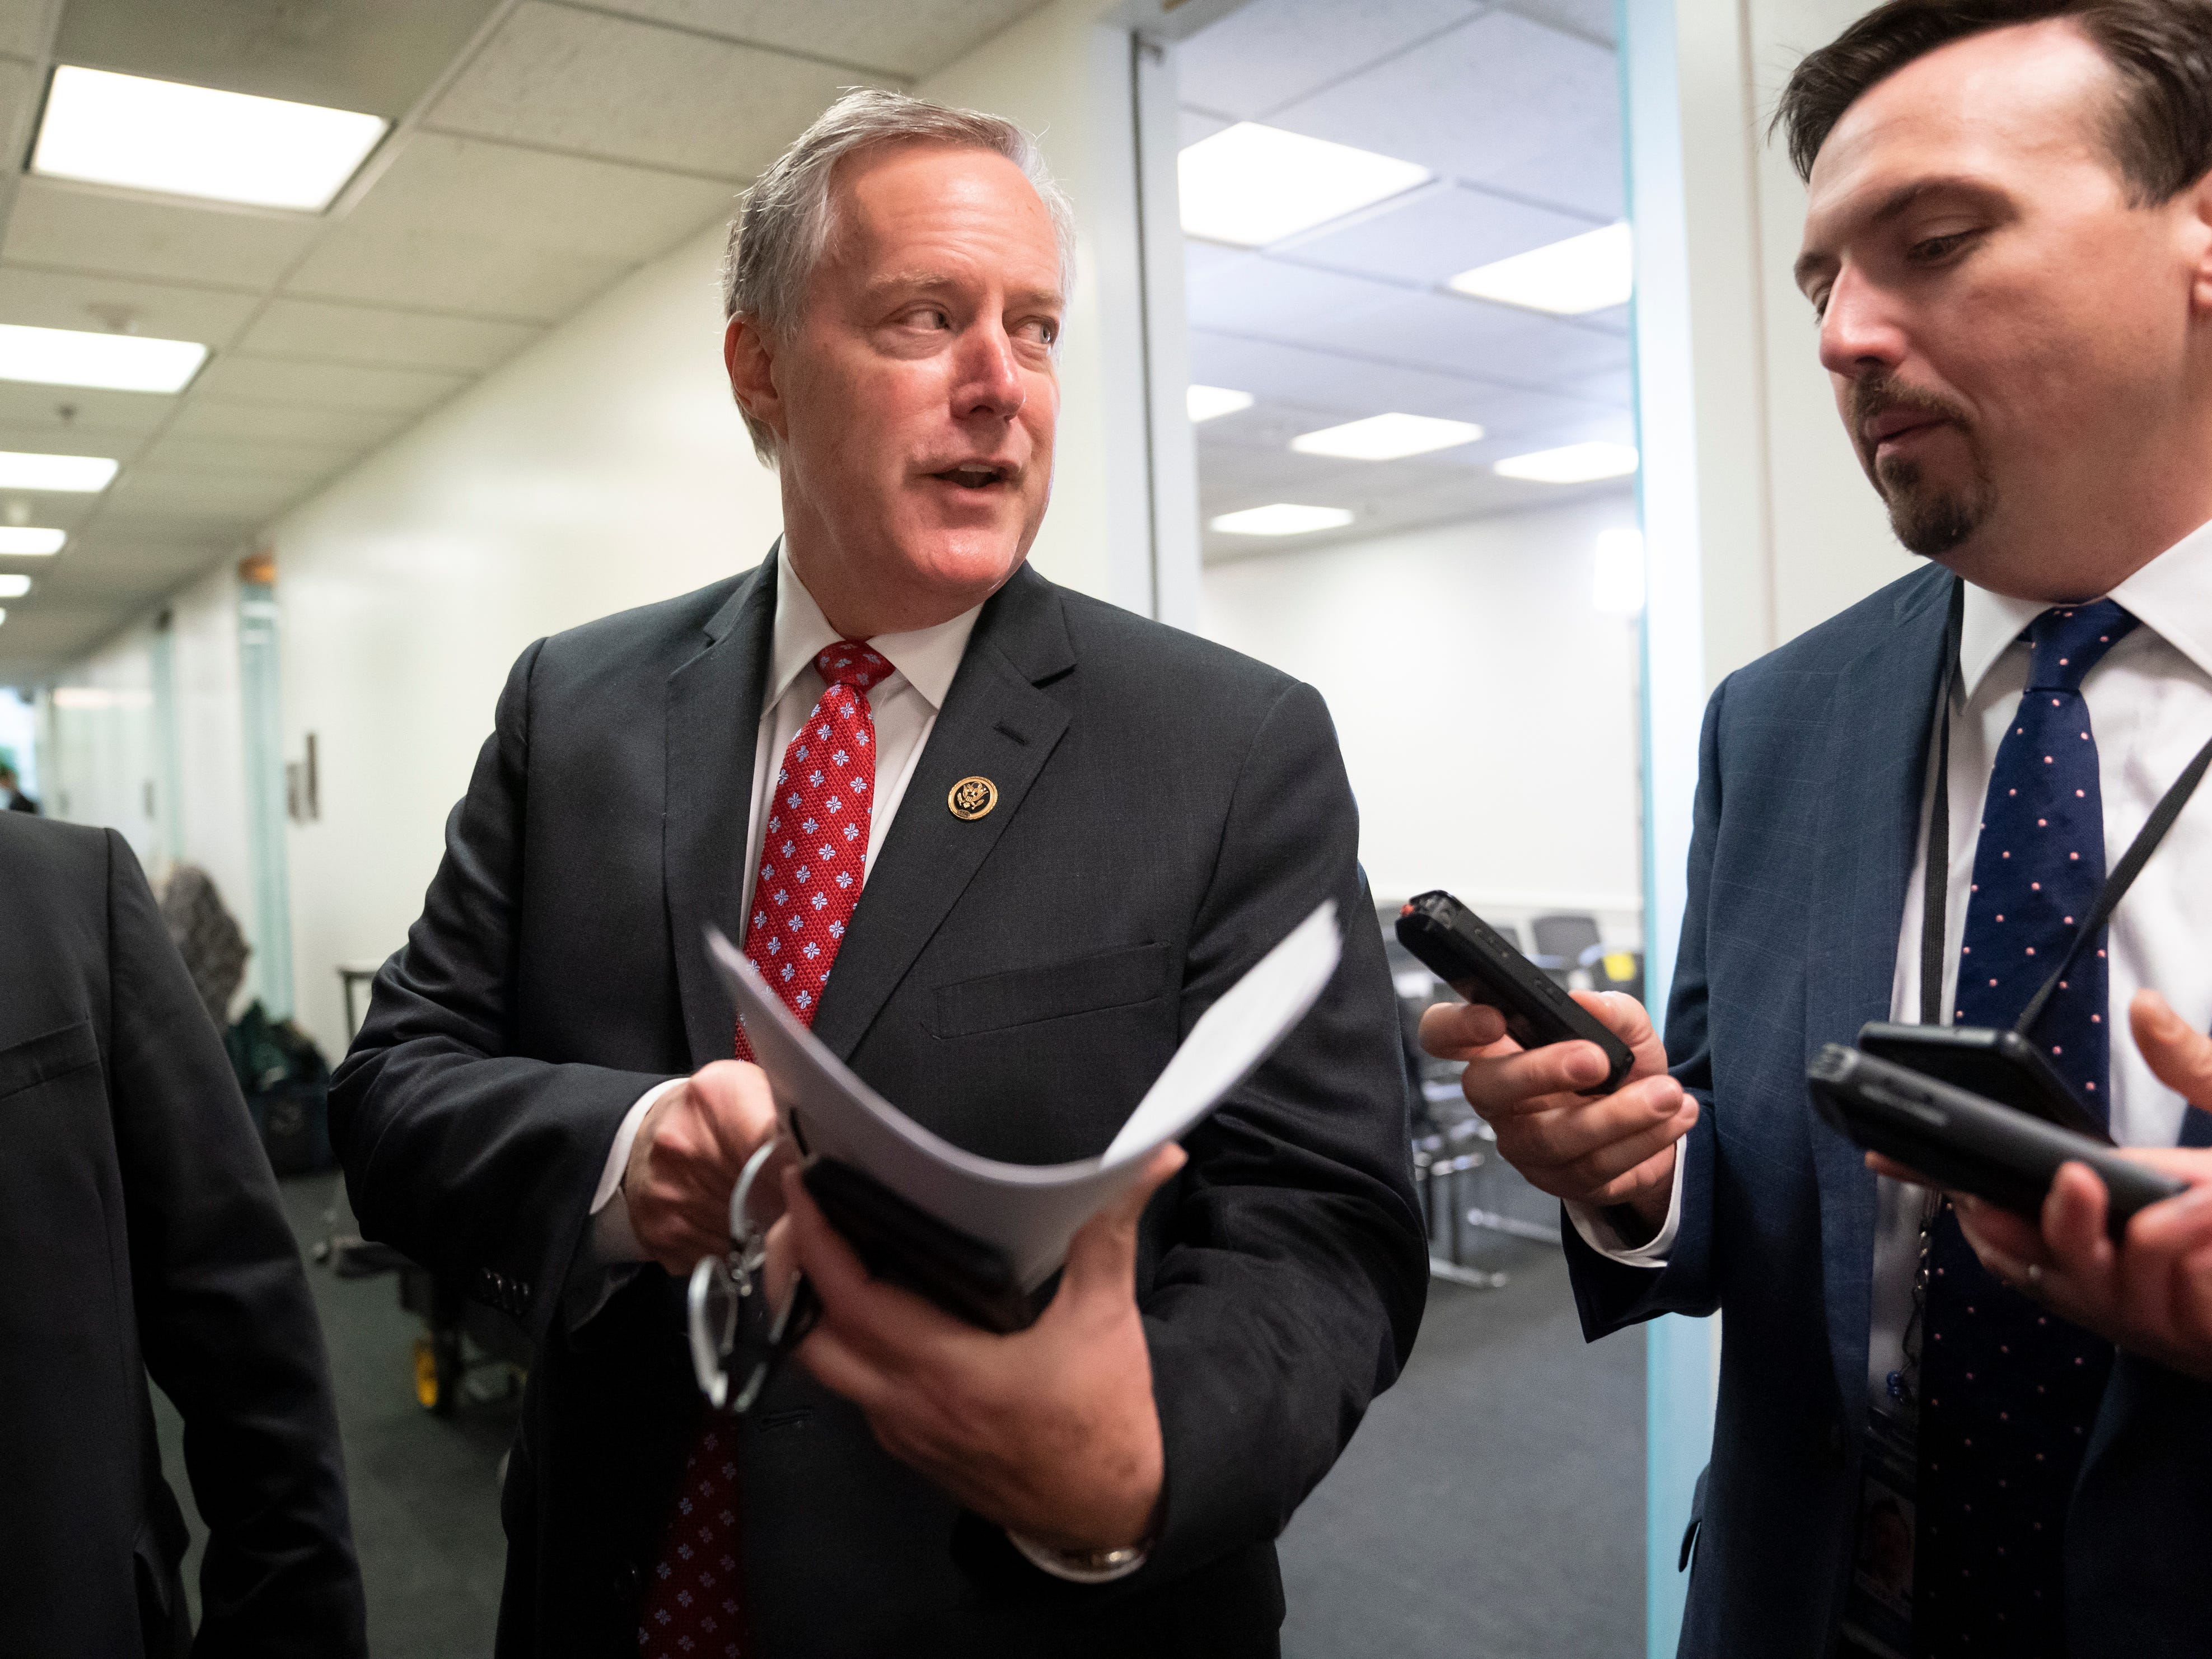 Fact check: Meadows wrongly claims Obama removed census citizenship question in 2010